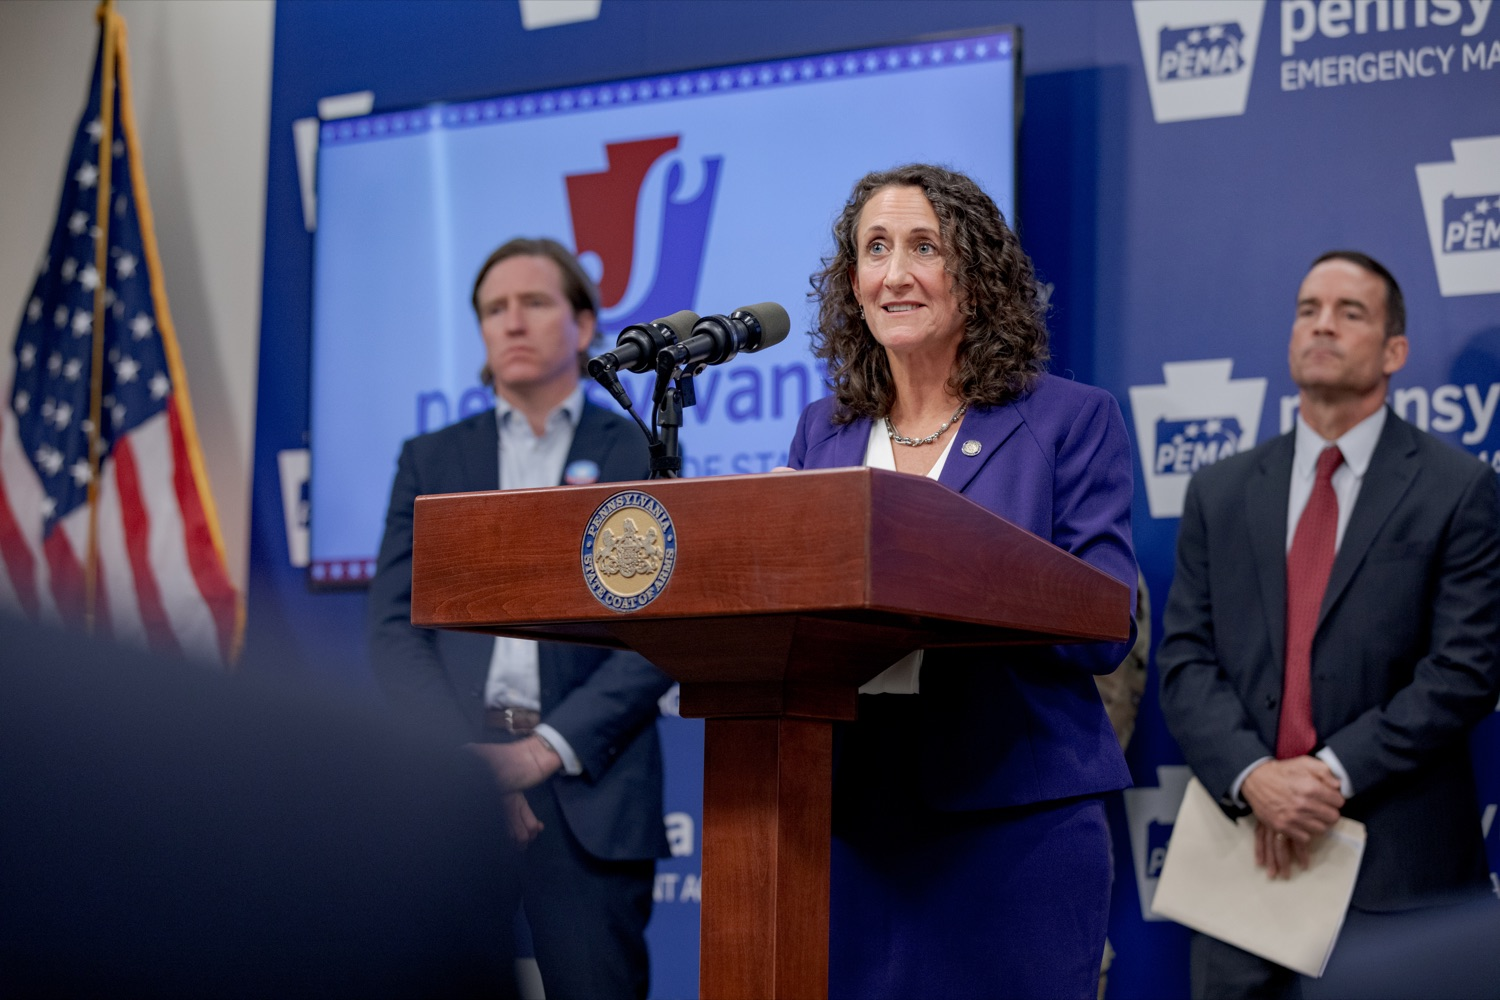 "<a href=""http://filesource.abacast.com/commonwealthofpa/photo/17558_DOS_Election_Update_NK_001.JPG"" target=""_blank"">⇣ Download Photo<br></a>Acting Secretary of State Kathy Boockvar speaks during a press conference assuring Pennsylvanians that a sophisticated network of federal, state and local partnerships is safeguarding todays municipal election, inside PEMA headquarters on Tuesday, November 5, 2019."